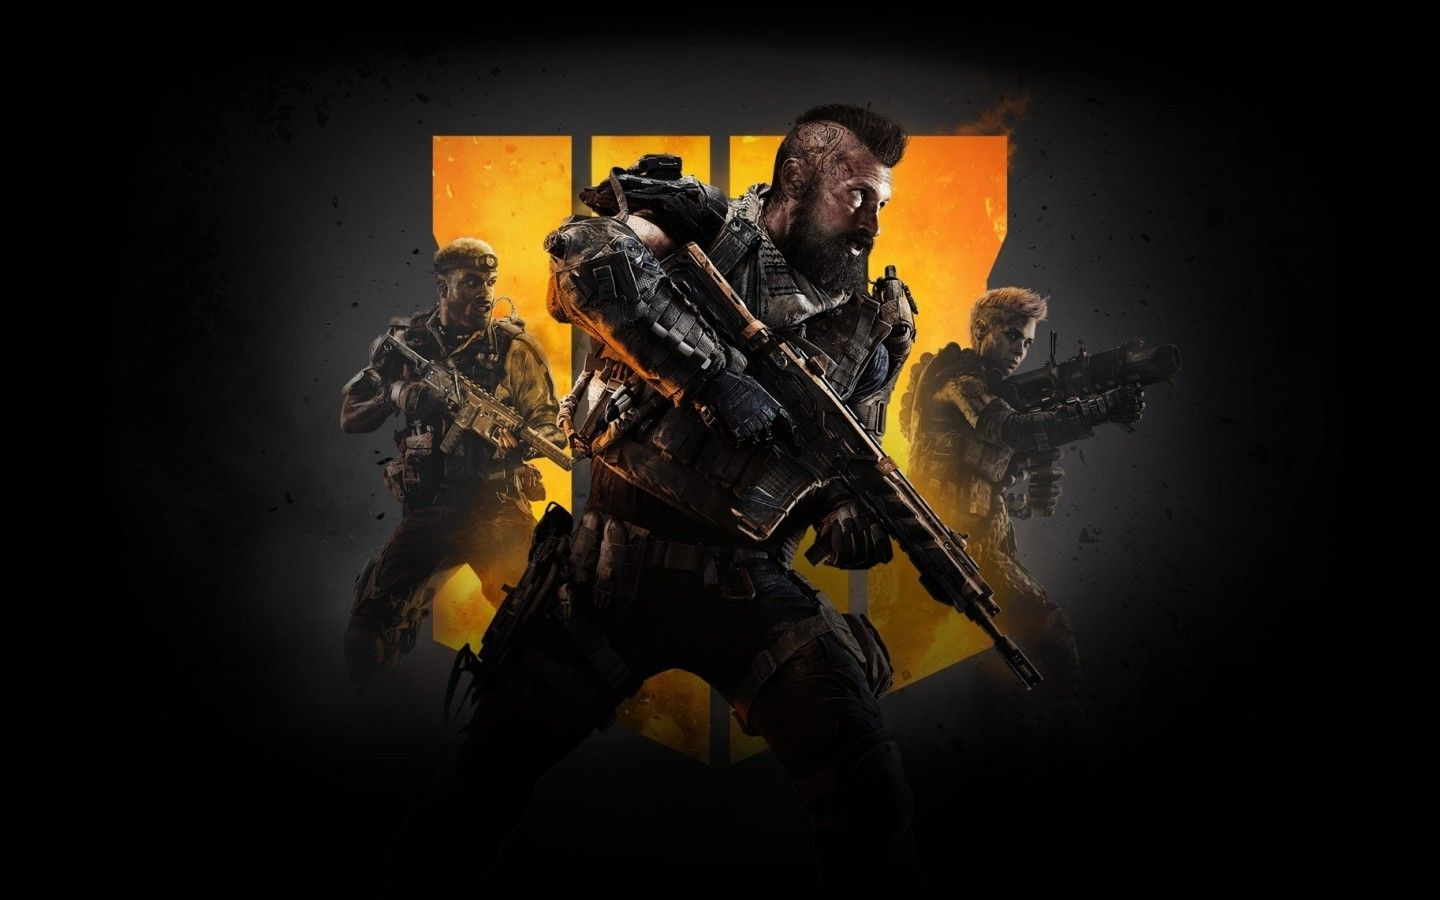 Call Of Duty Black Ops Background Hd Wallpaper Call Of Duty